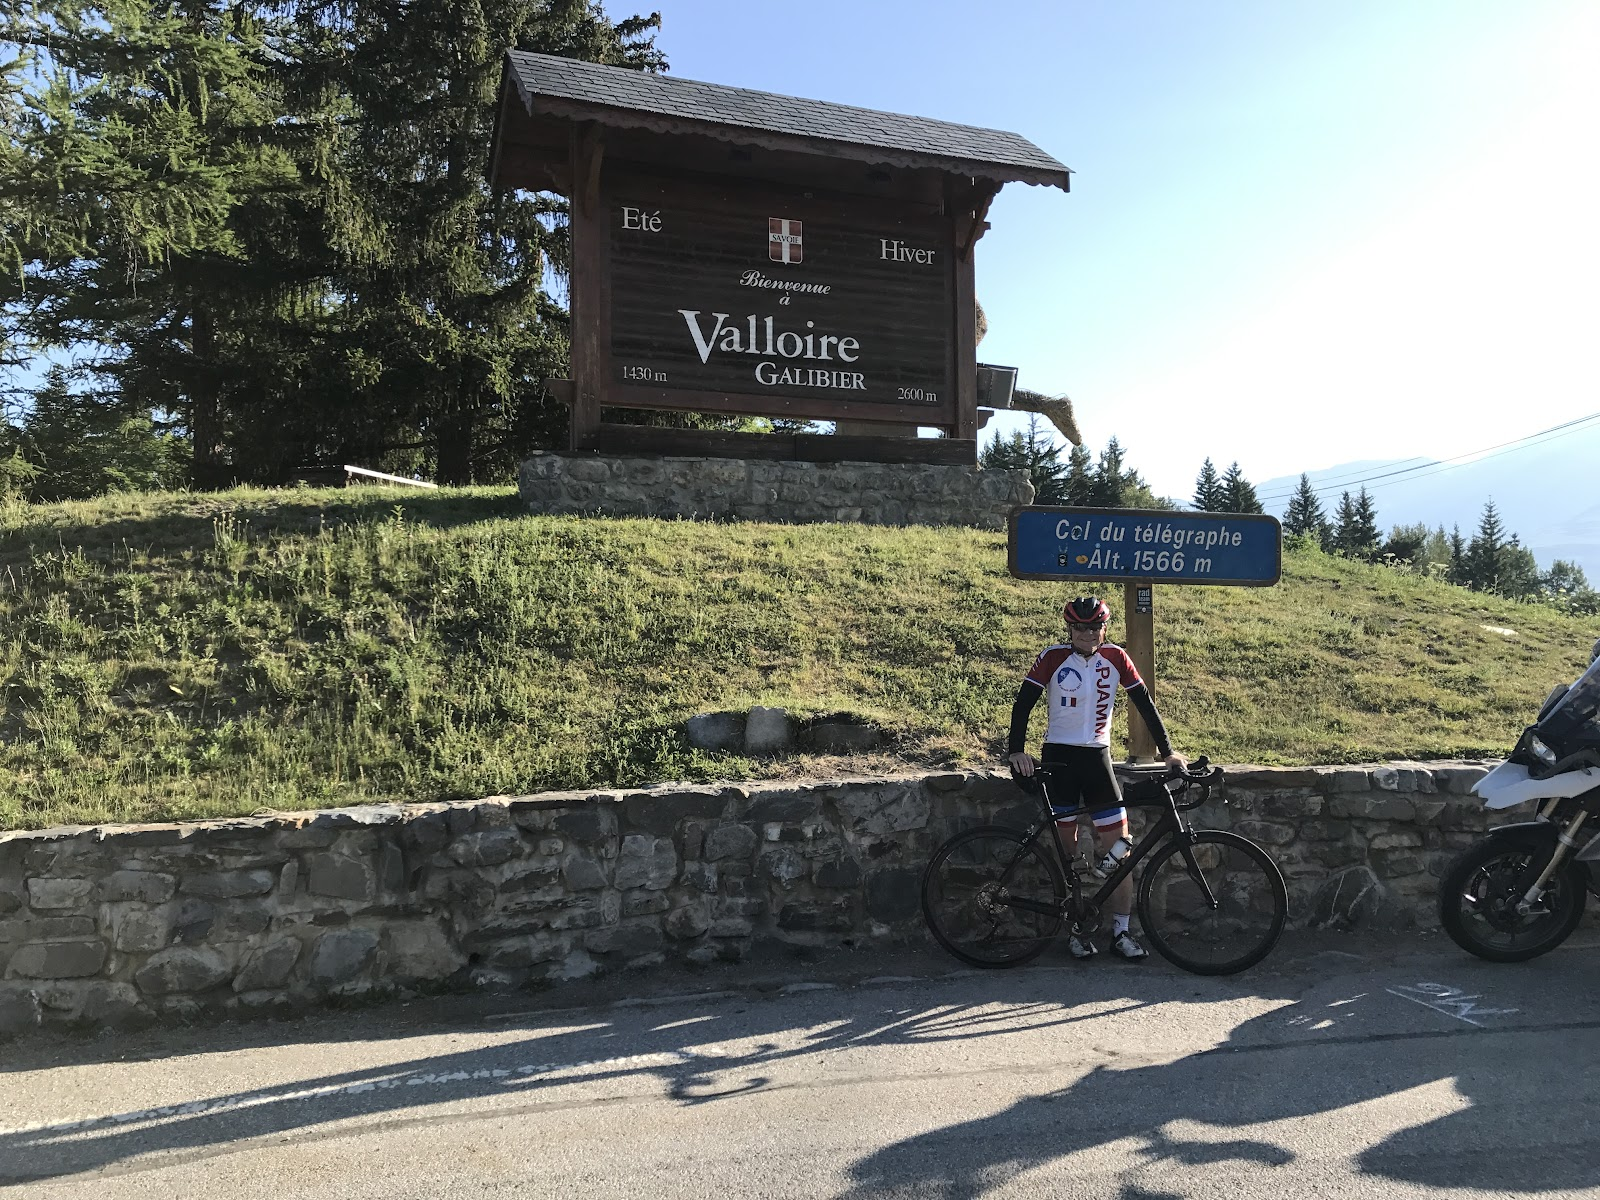 Cycling Col du Telegraphe and Col du Galibier - John Johnson and PJAMM with bike at Col du Telegraphe.